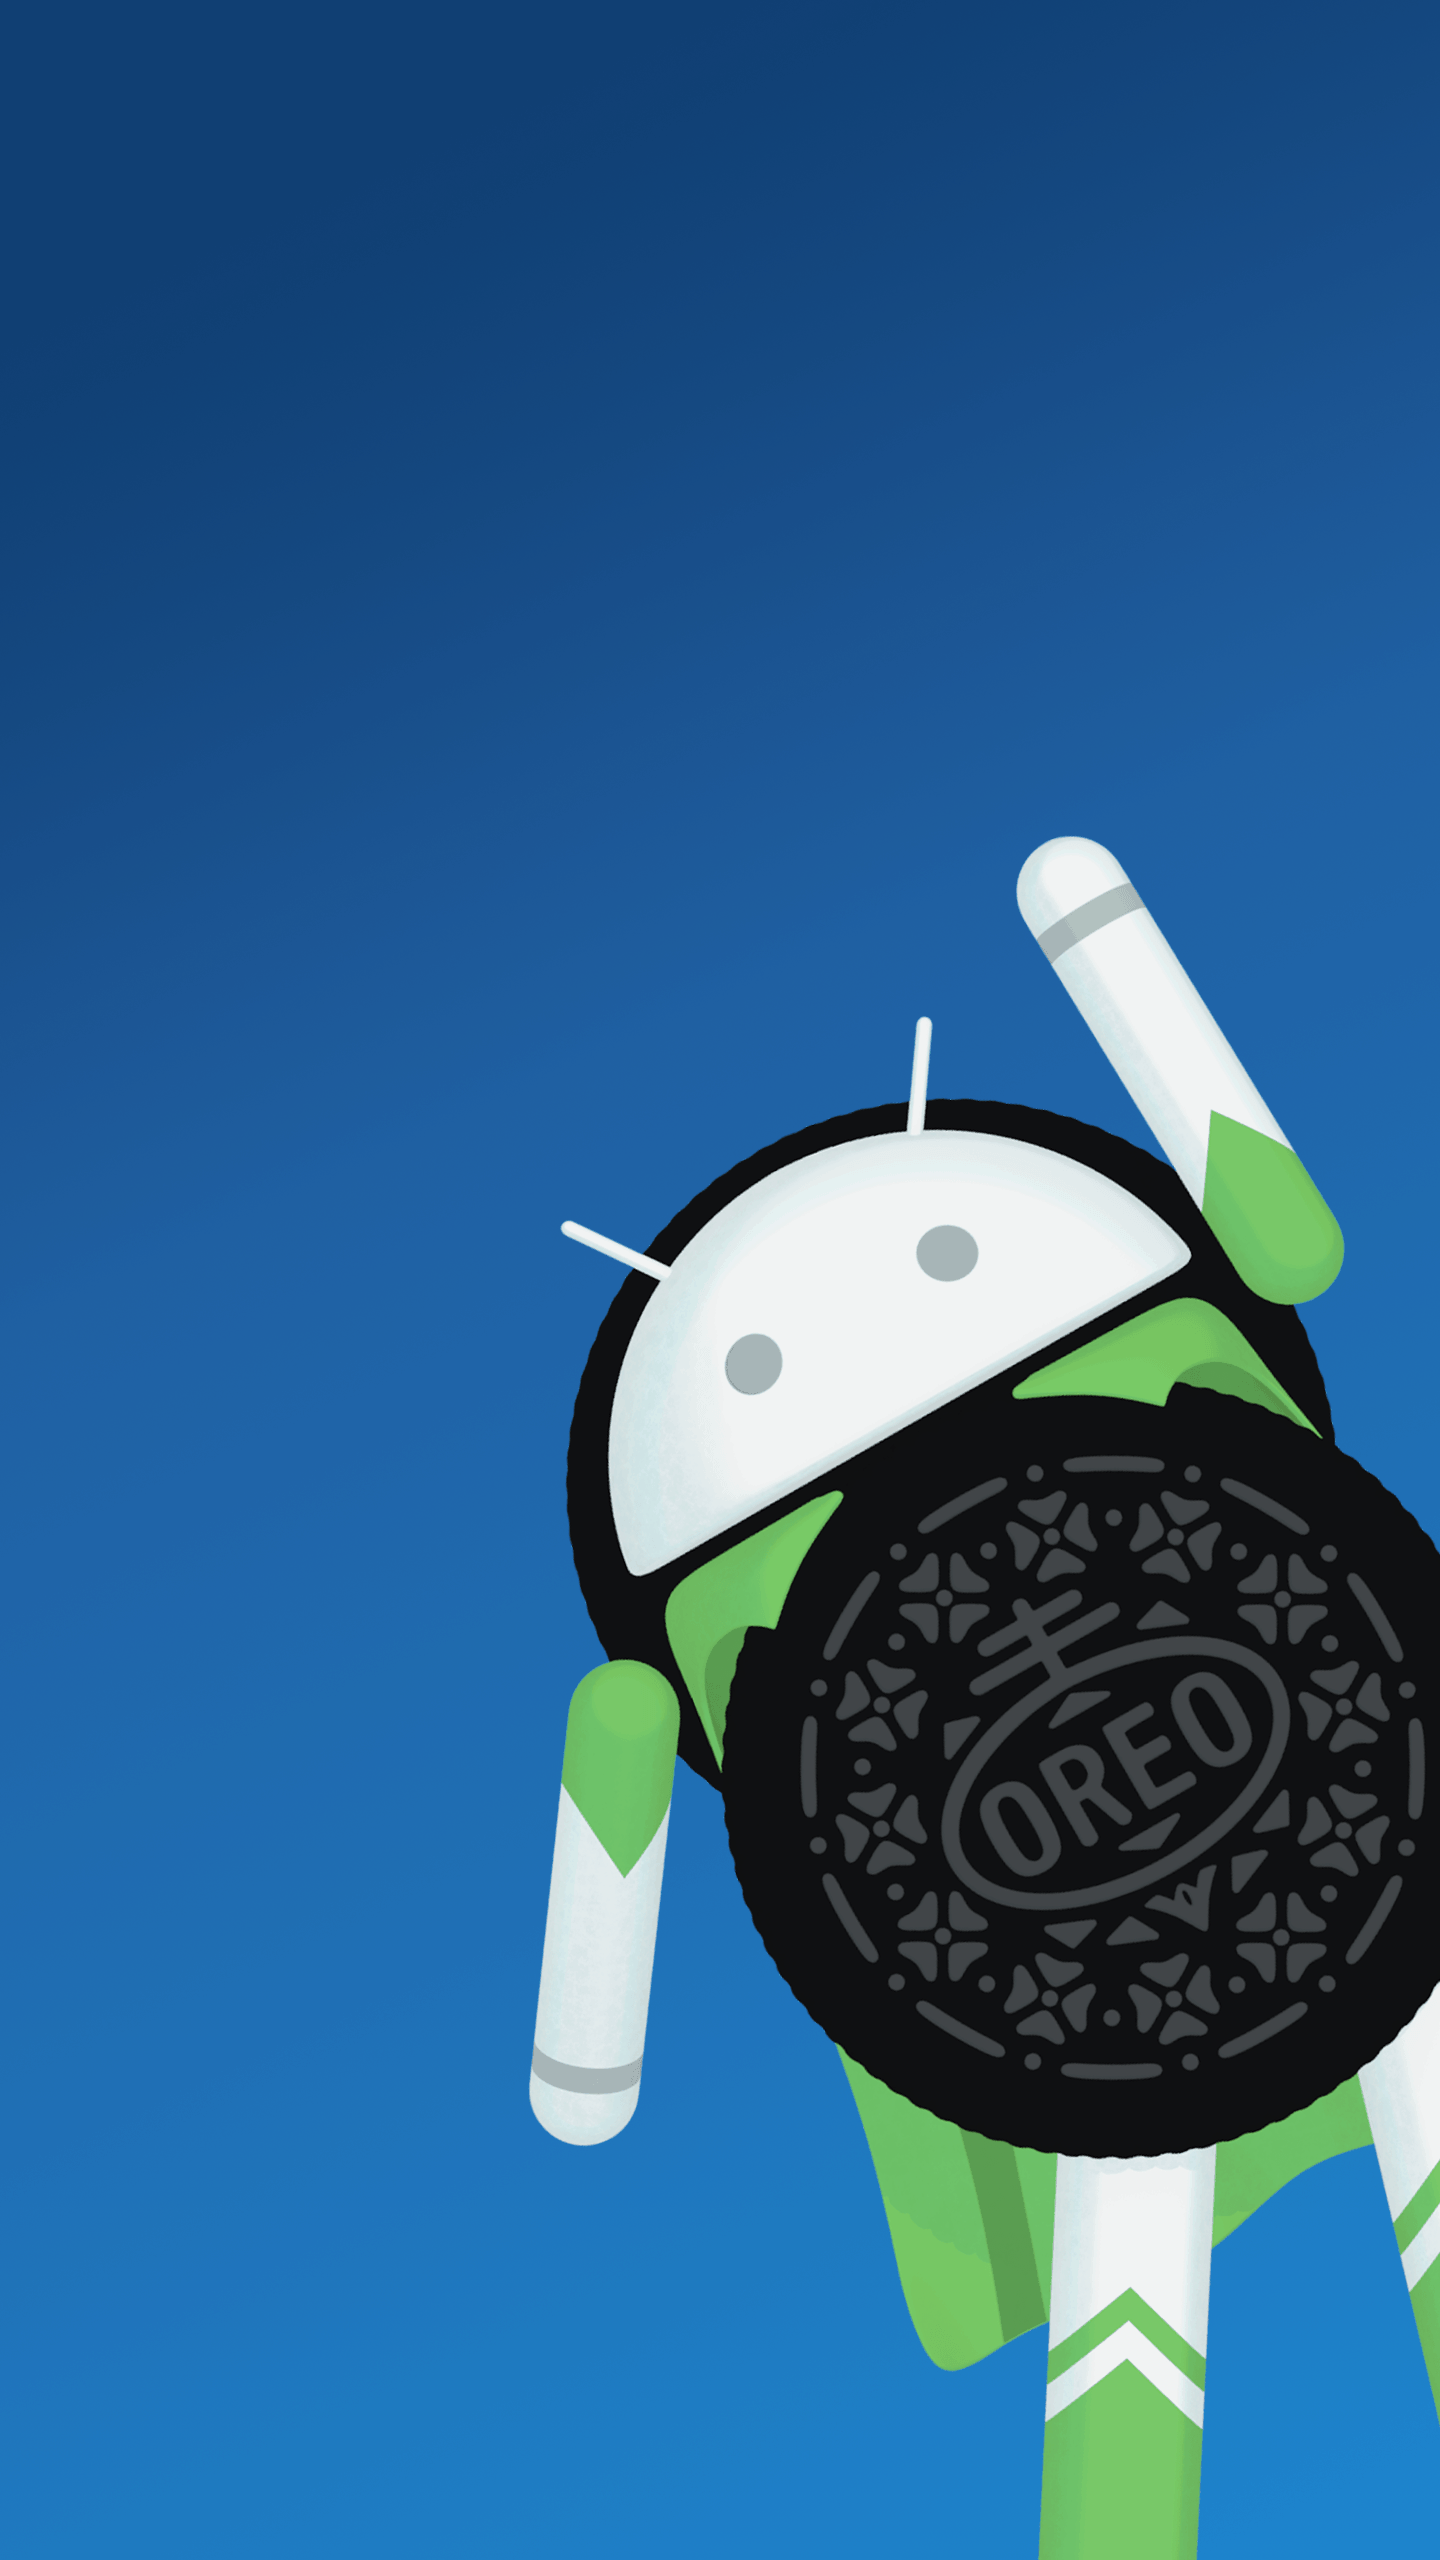 1440x2560 Download Android Oreo Stock Wallpapers [7 Wallpapers]